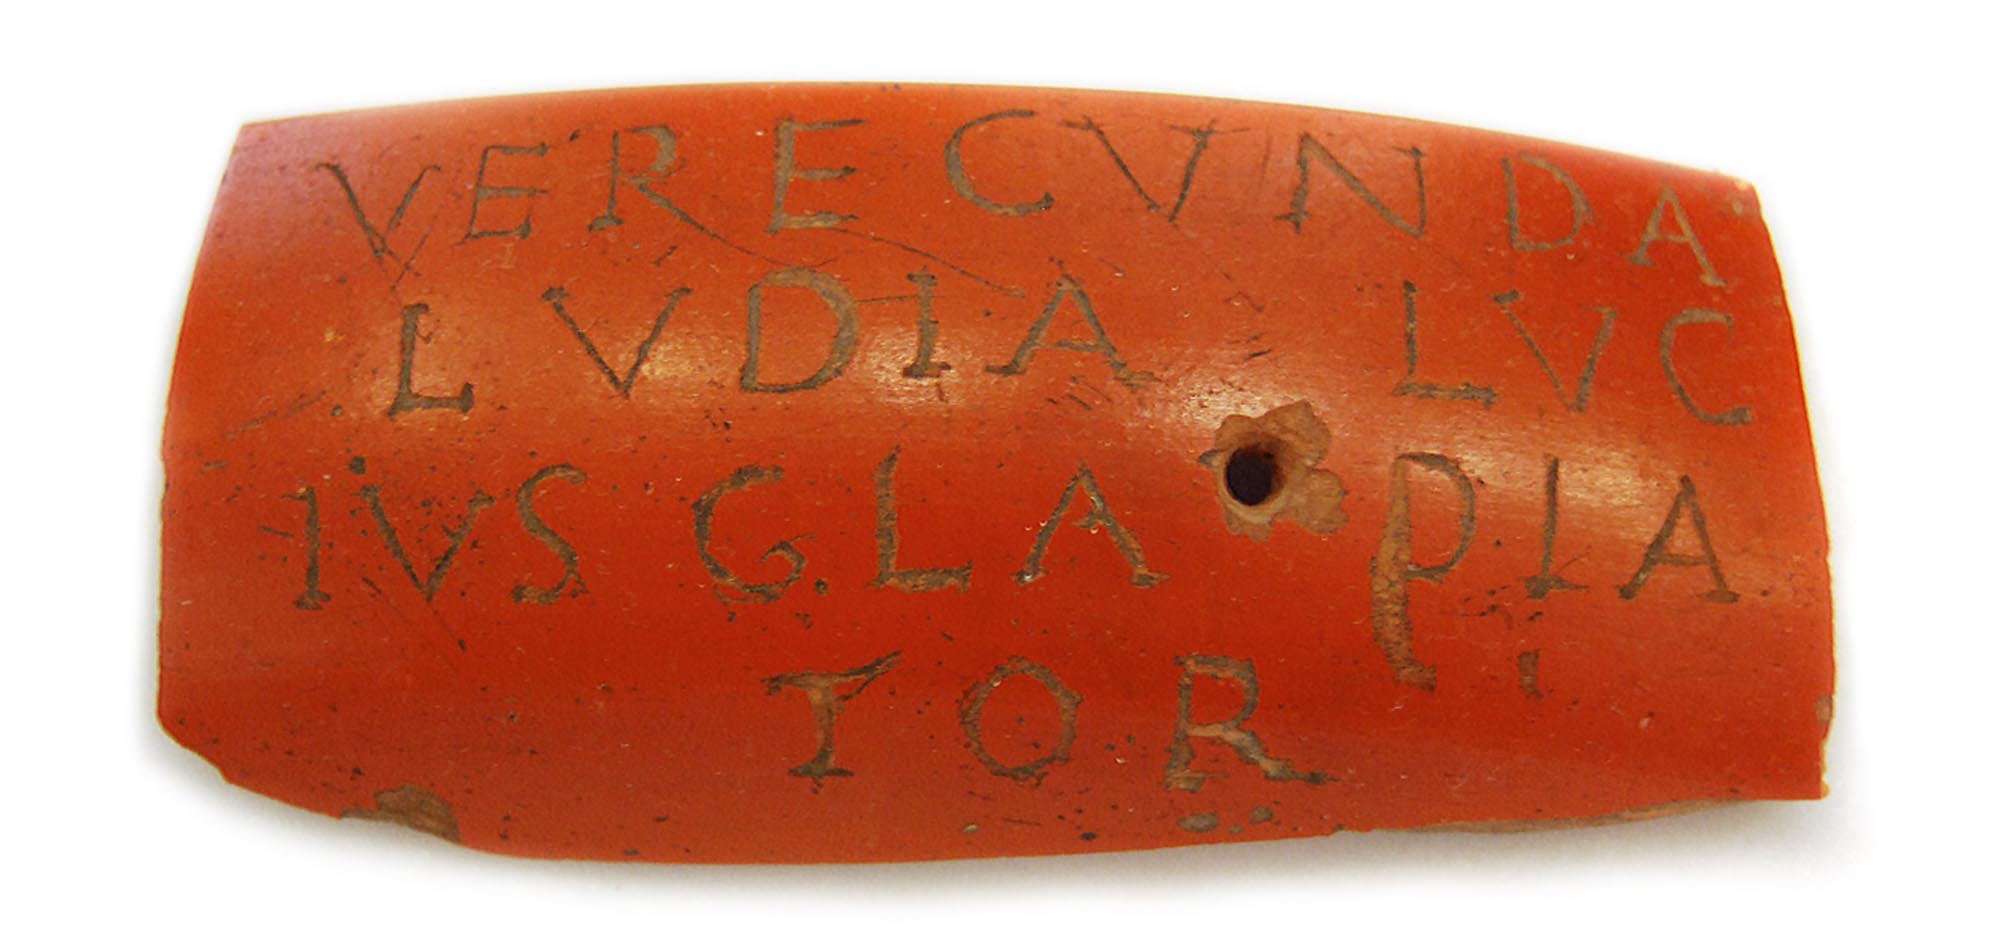 A sherd of red-slip Roman pottery with the inscription VERECVNDA LVDIA LVCIVS GLADIATOR meaning 'Verecunda the actress (or female gladiator) and Lucius the Gladiator'. Possibly a love token meant to be worn -